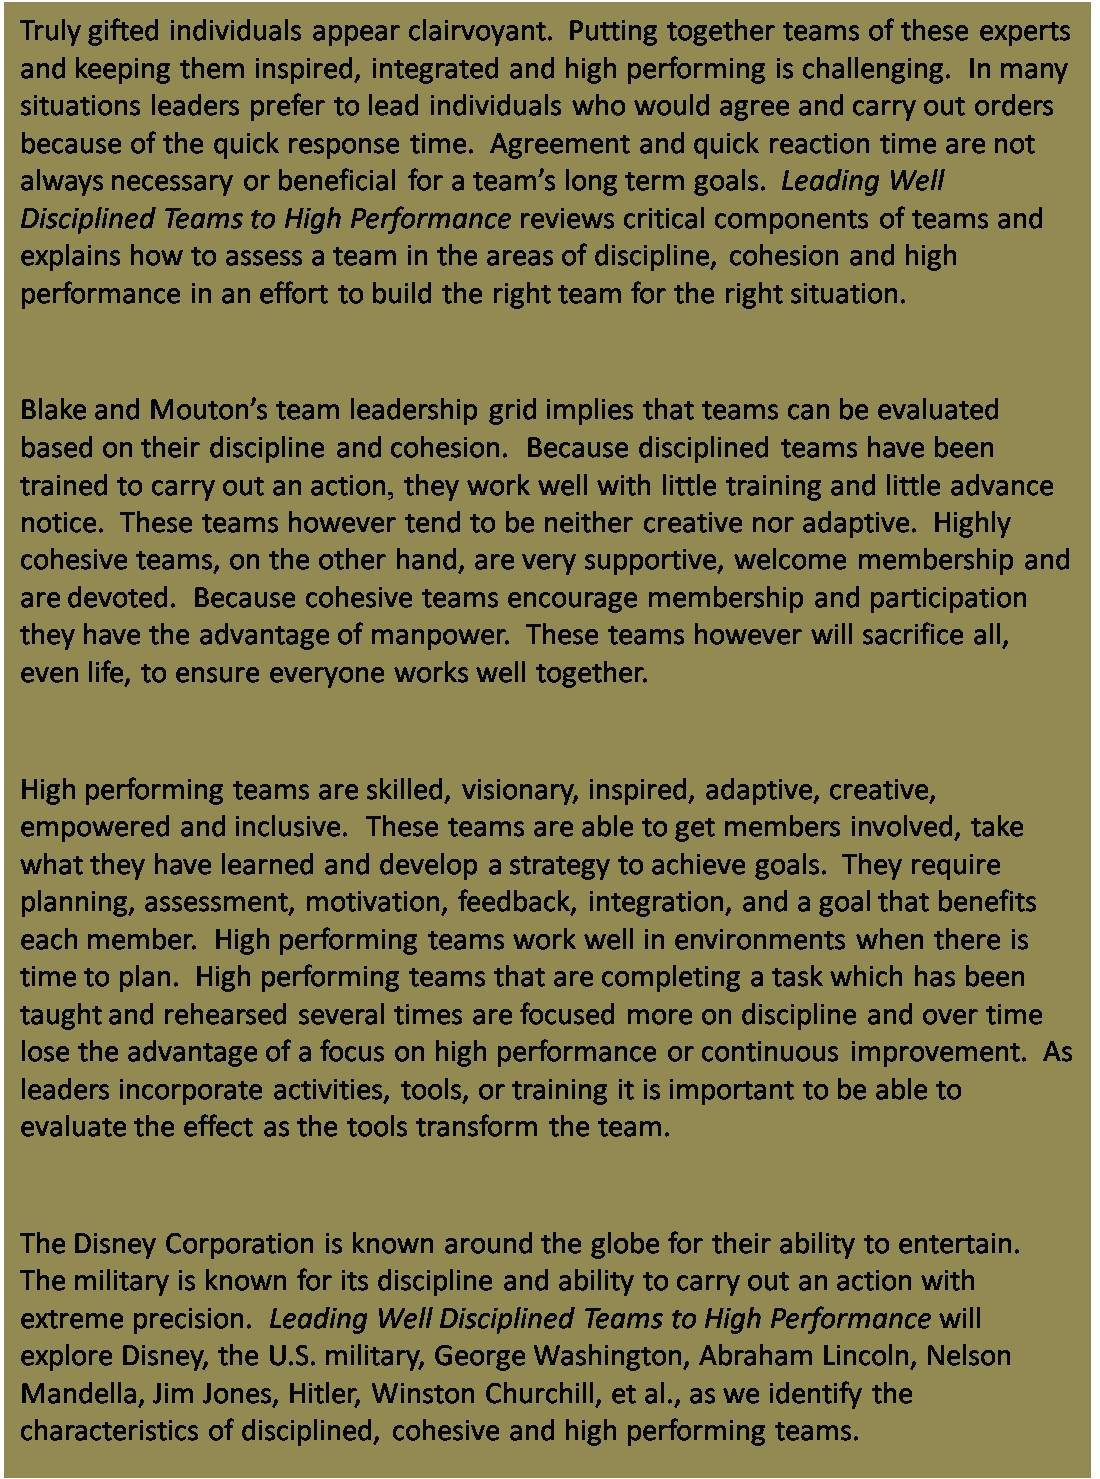 Leading Well Disciplined Teams to High Performance